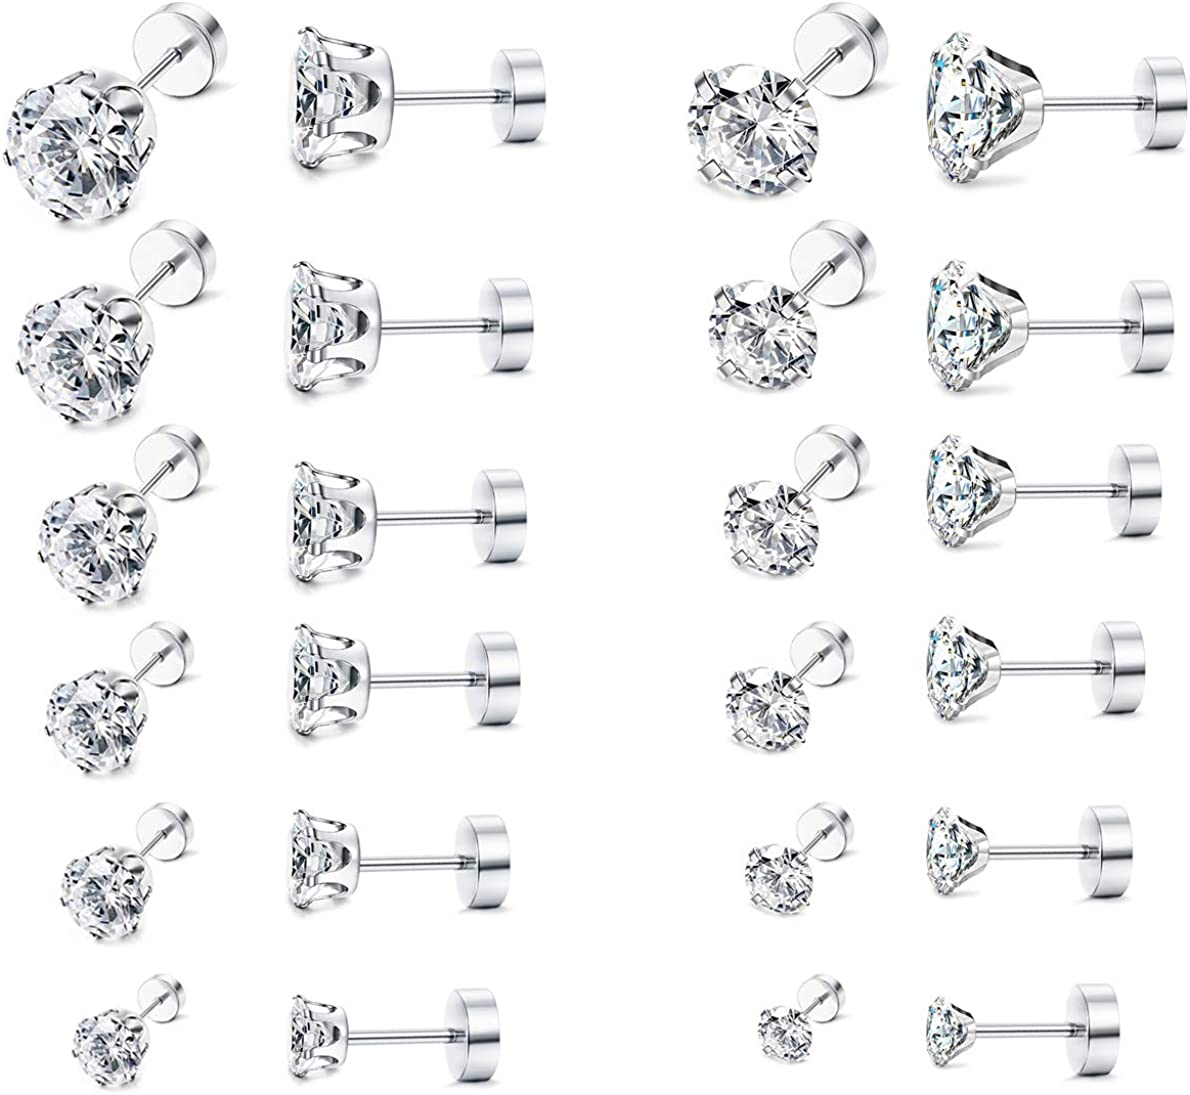 LOYALLOOK Atlanta Mall 12 Pairs In a popularity 20G Stainless Steel Cubic Stud Z Ear Piercing